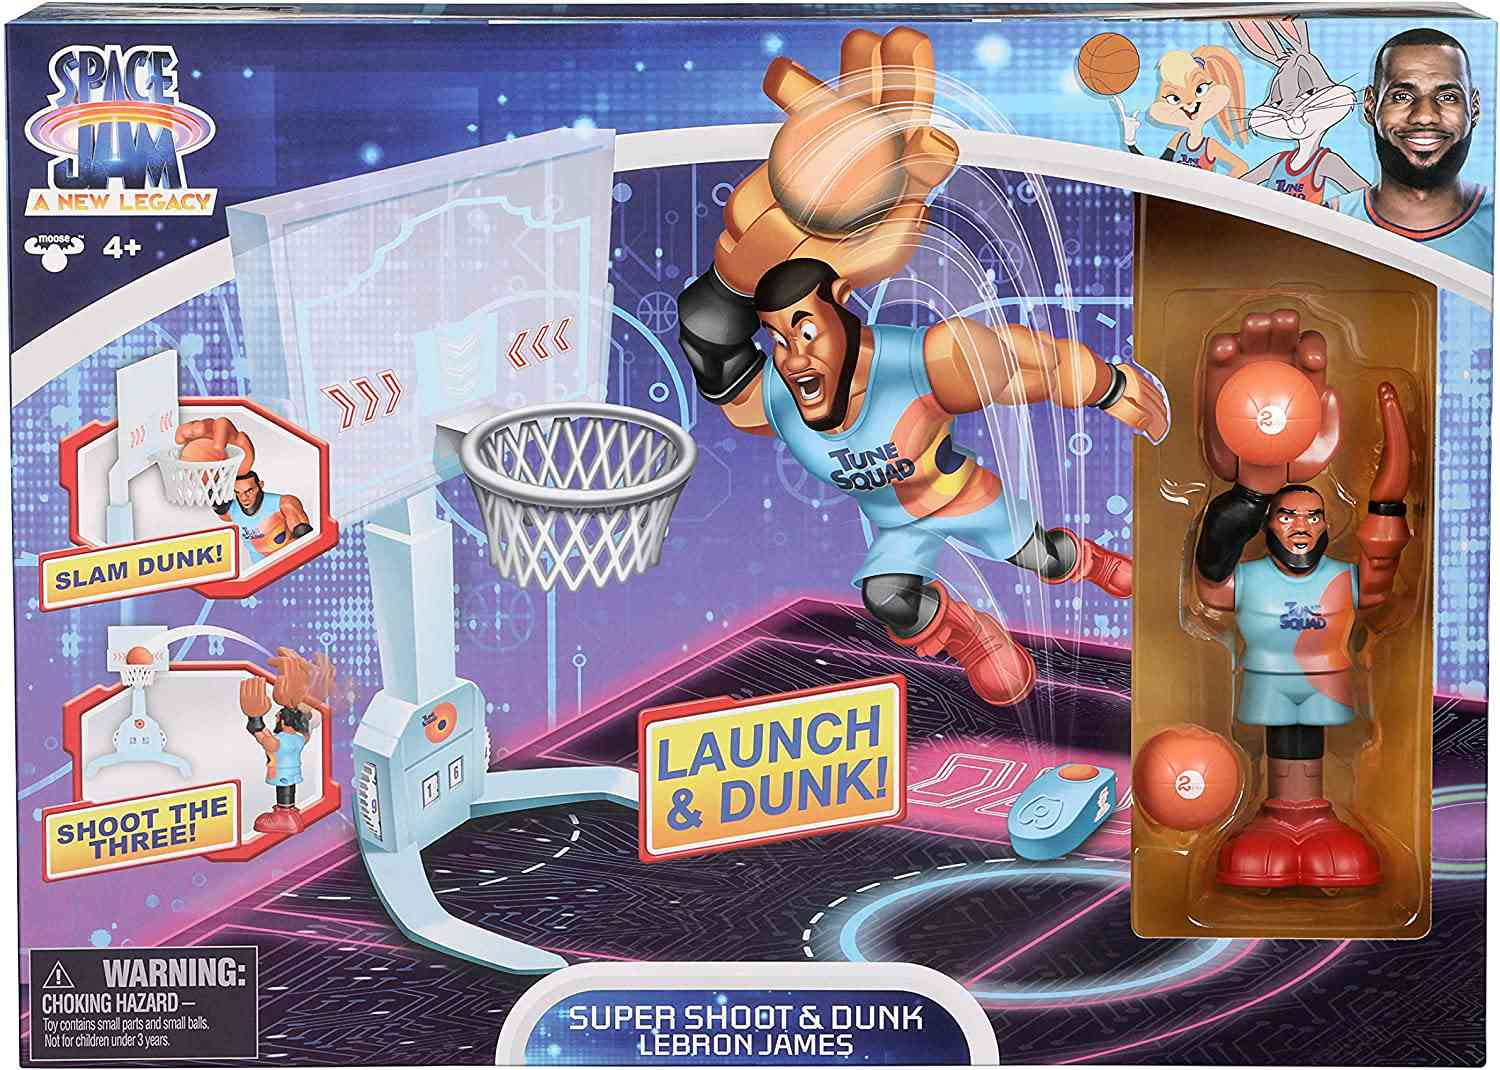 SPACE JAM: A New Legacy Super Shoot & Dunk Playset